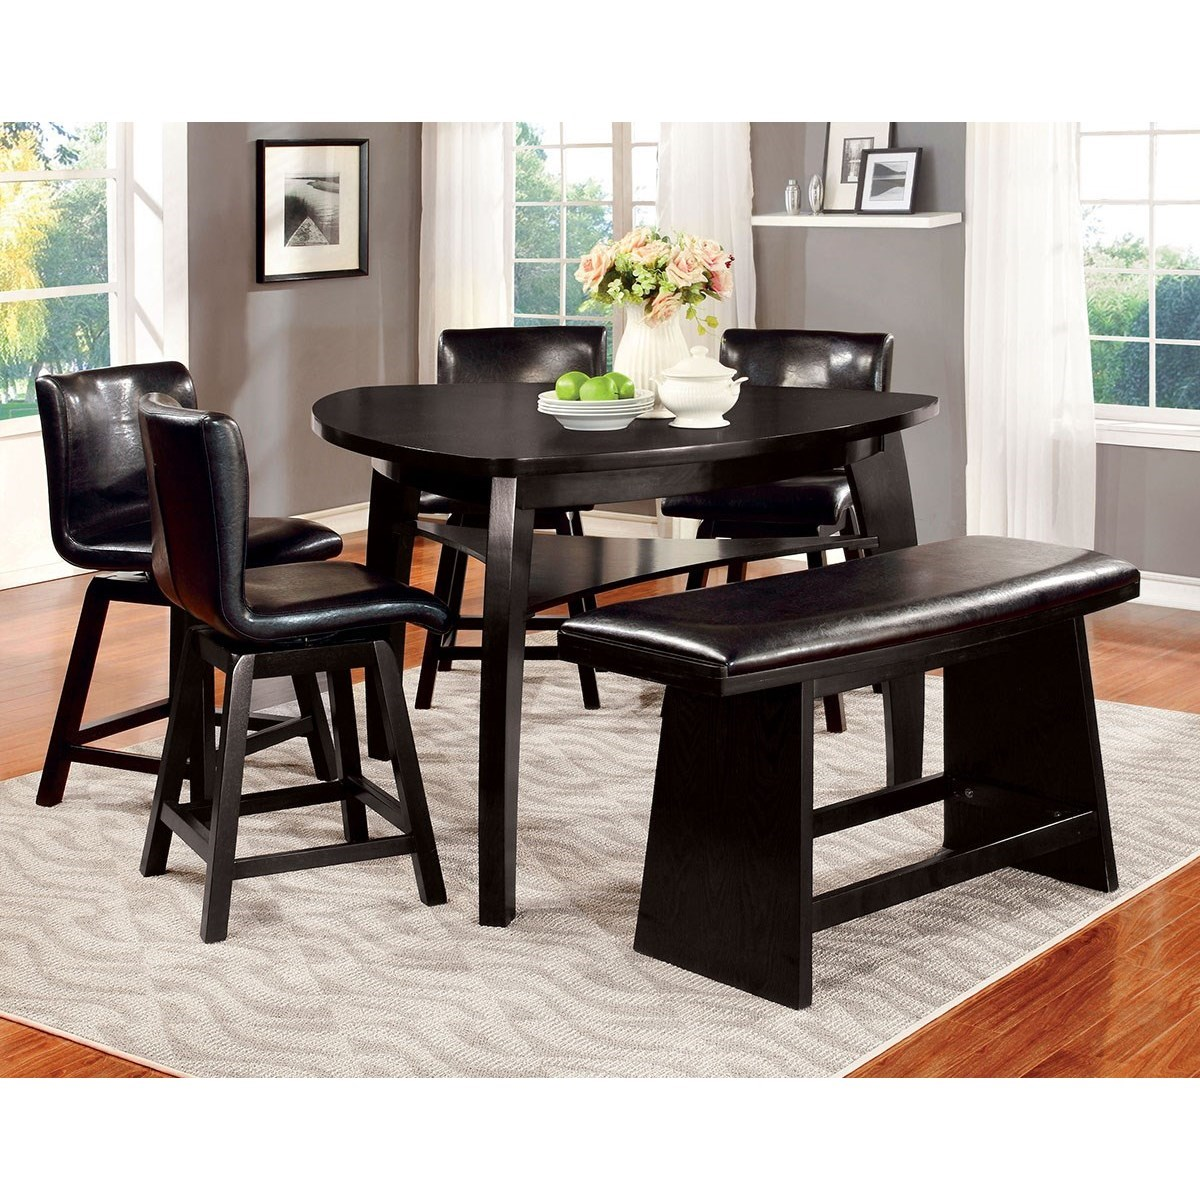 Hurley Table, 4 Chairs and Bench Set by Furniture of America at Dream Home Interiors